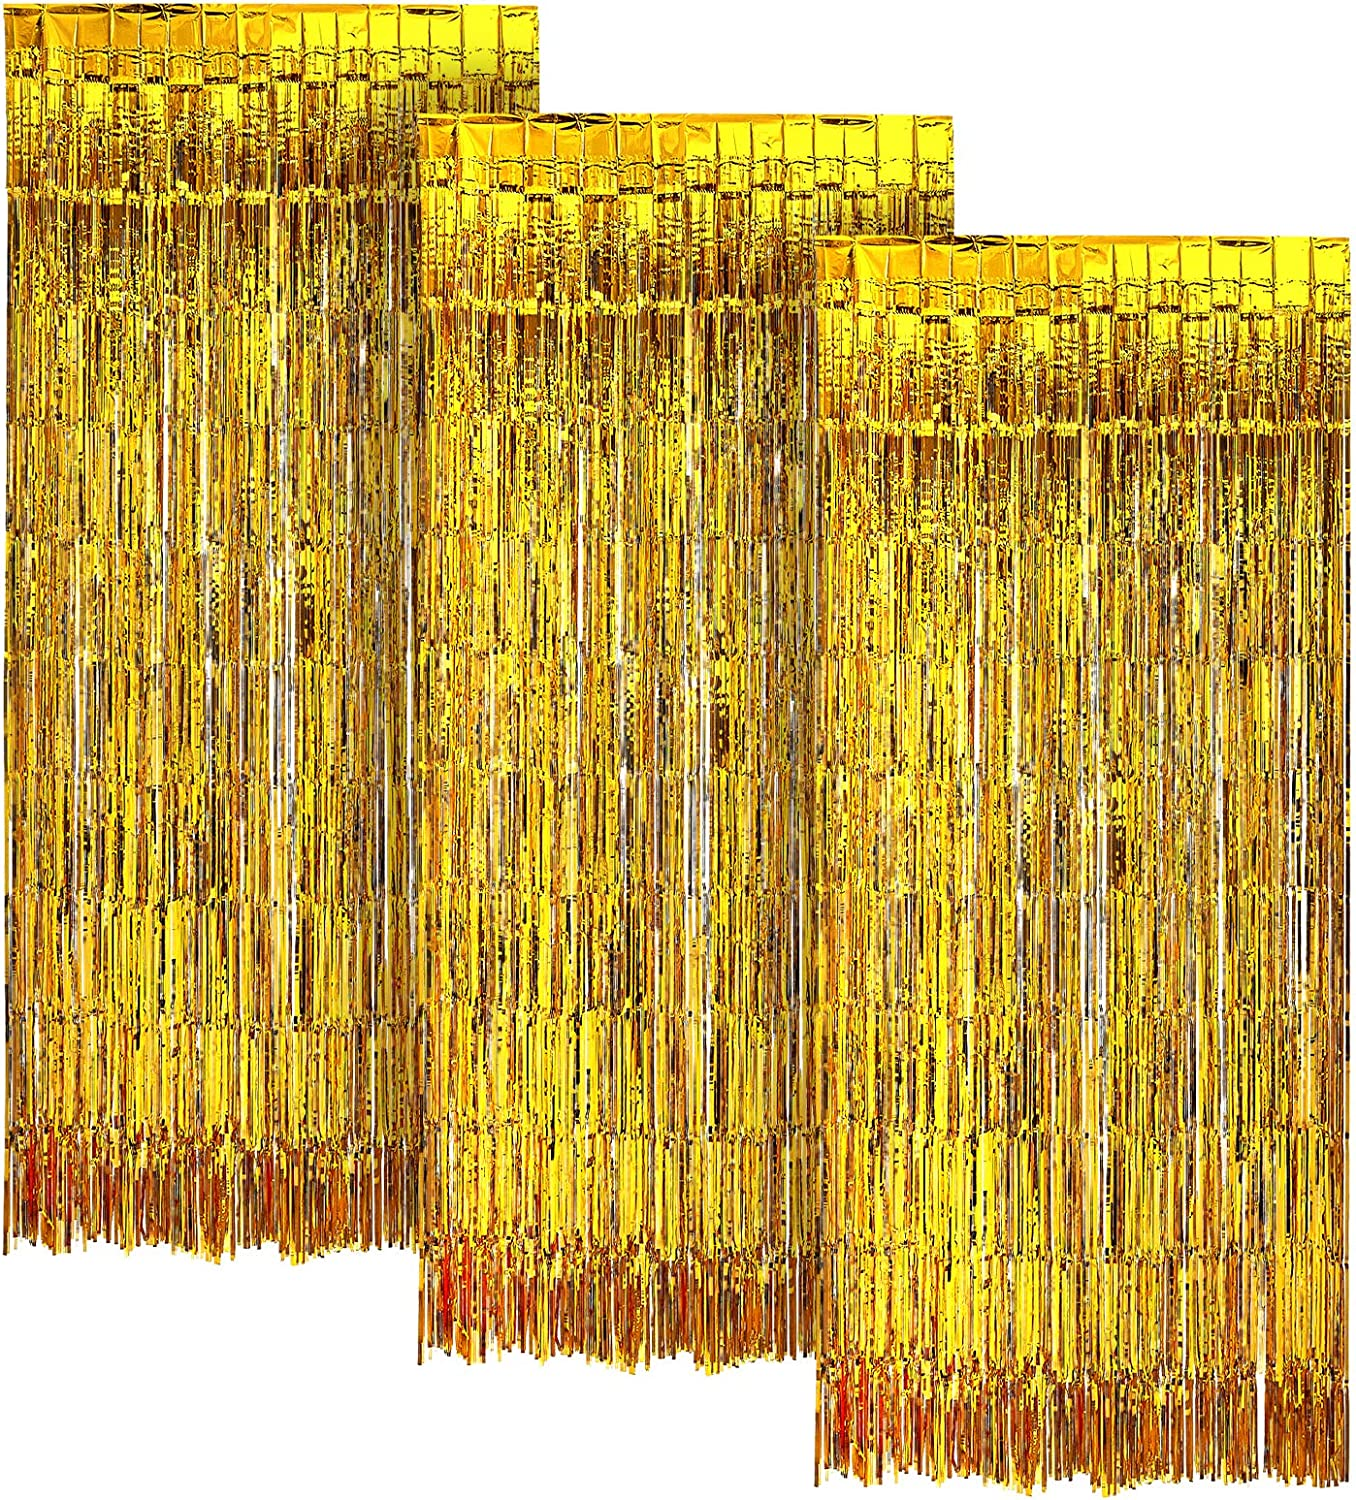 Gold FOIL Fringe Curtain | Metallic Shimmering Tinsel Decoration | Great for Party Décor, Photo Backdrops and More | Easy Installation | 3' x 8' | 3 pc